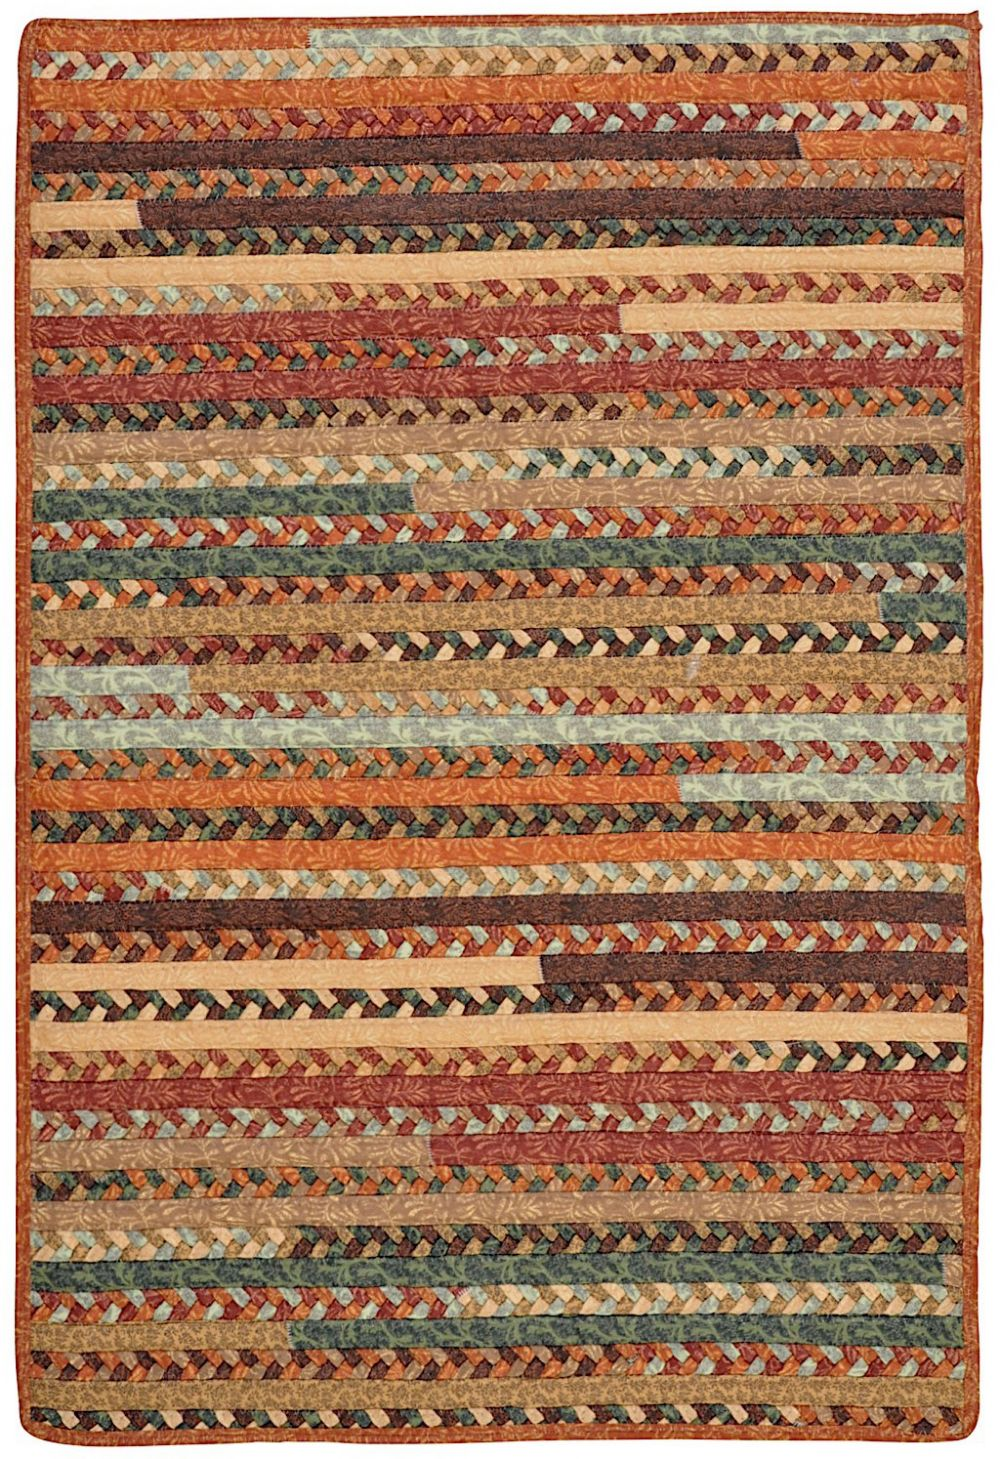 colonial mills olivera braided area rug collection